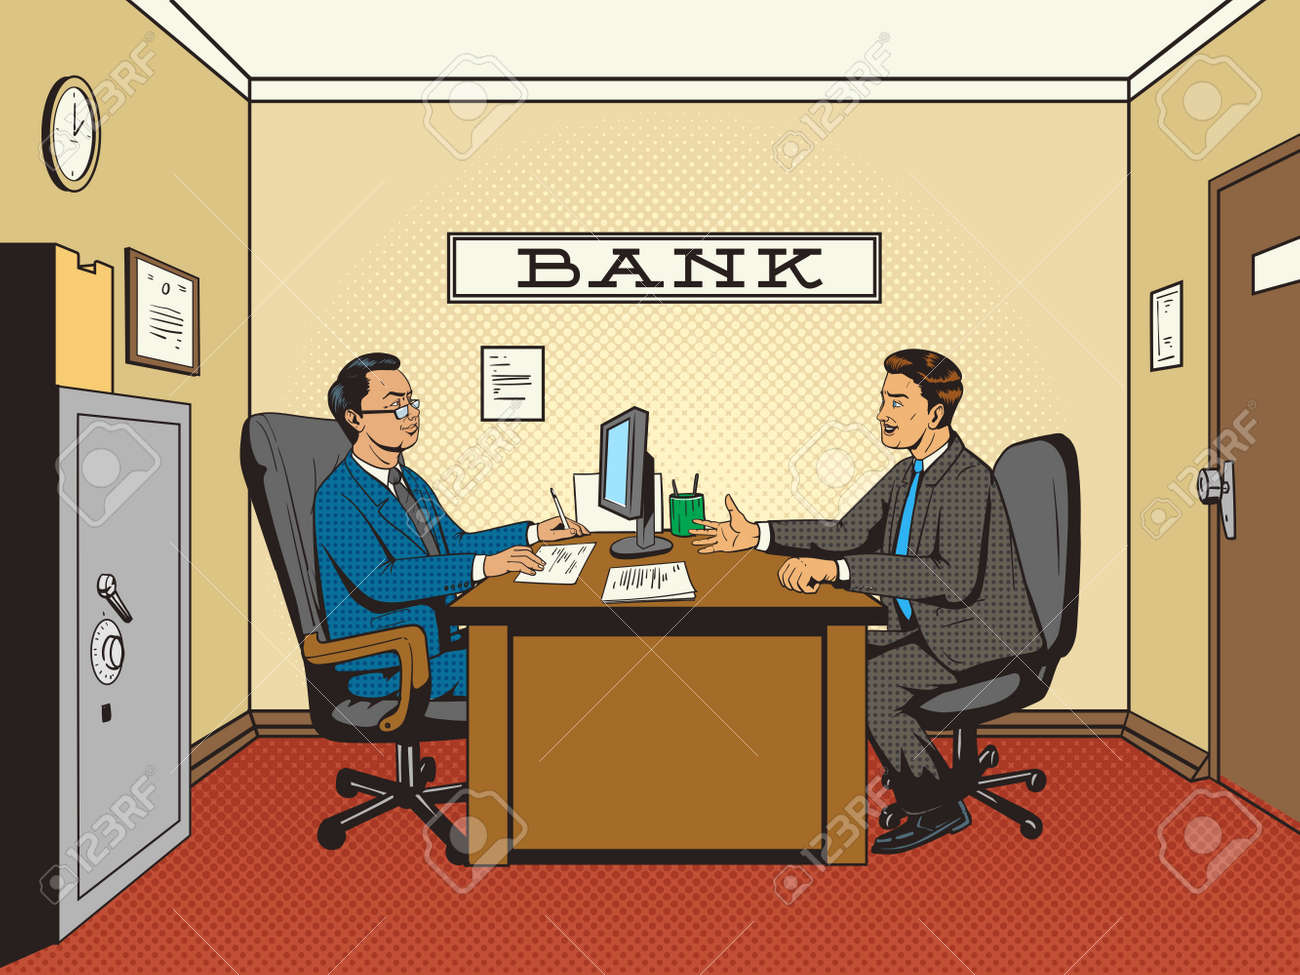 Businessman in bank pop art retro style vector illustration. Comic book style imitation. Man talks with banker - 58449222